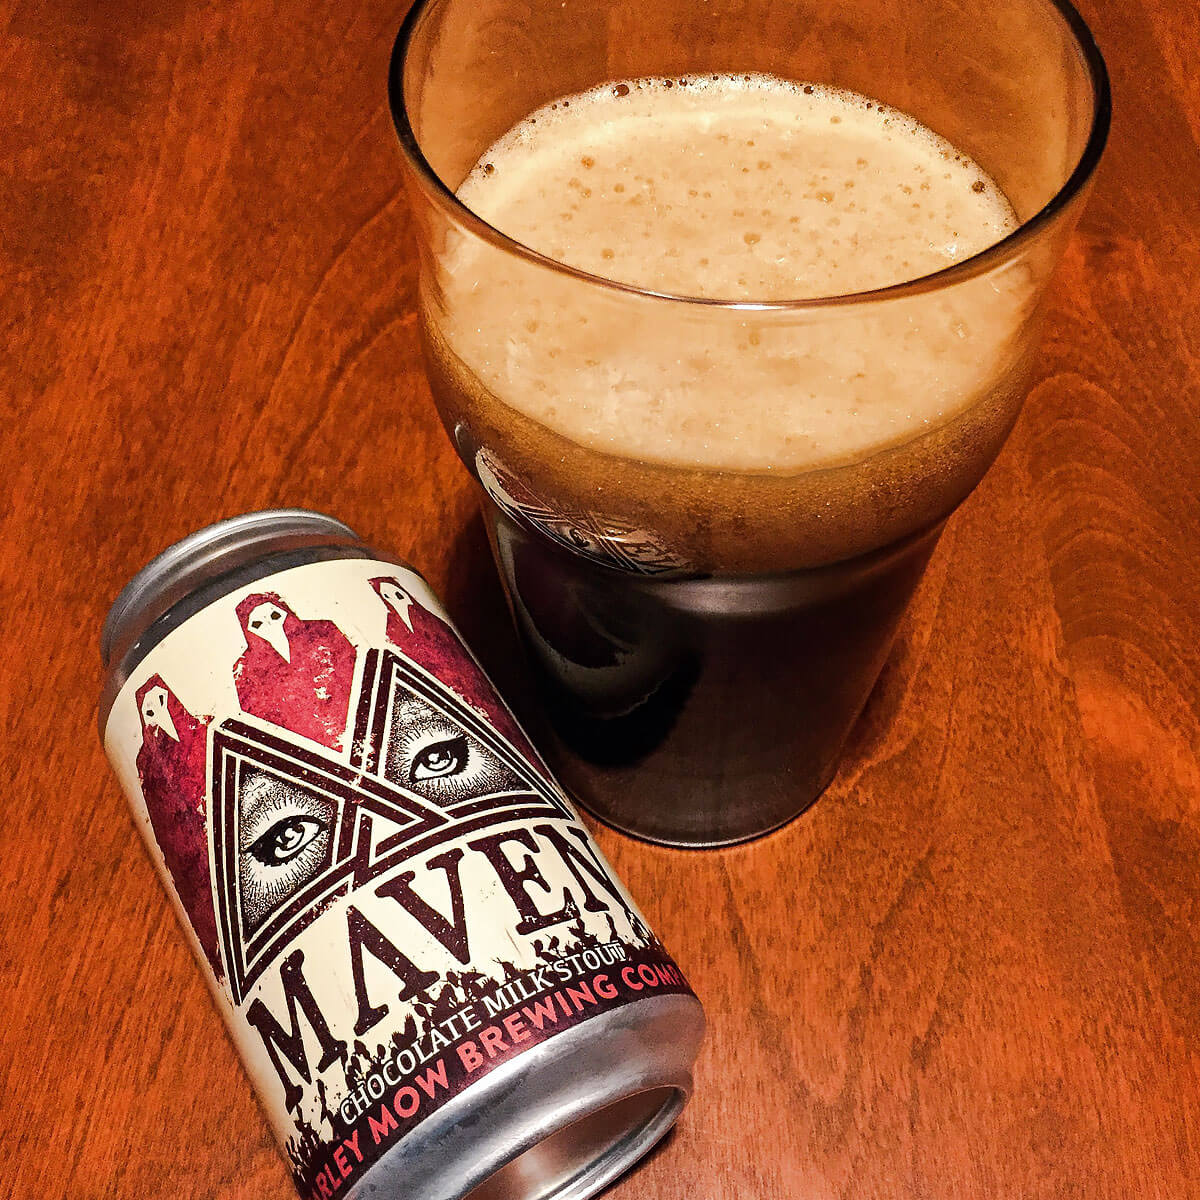 Maven, a Milk Stout by Barley Mow Brewing Company